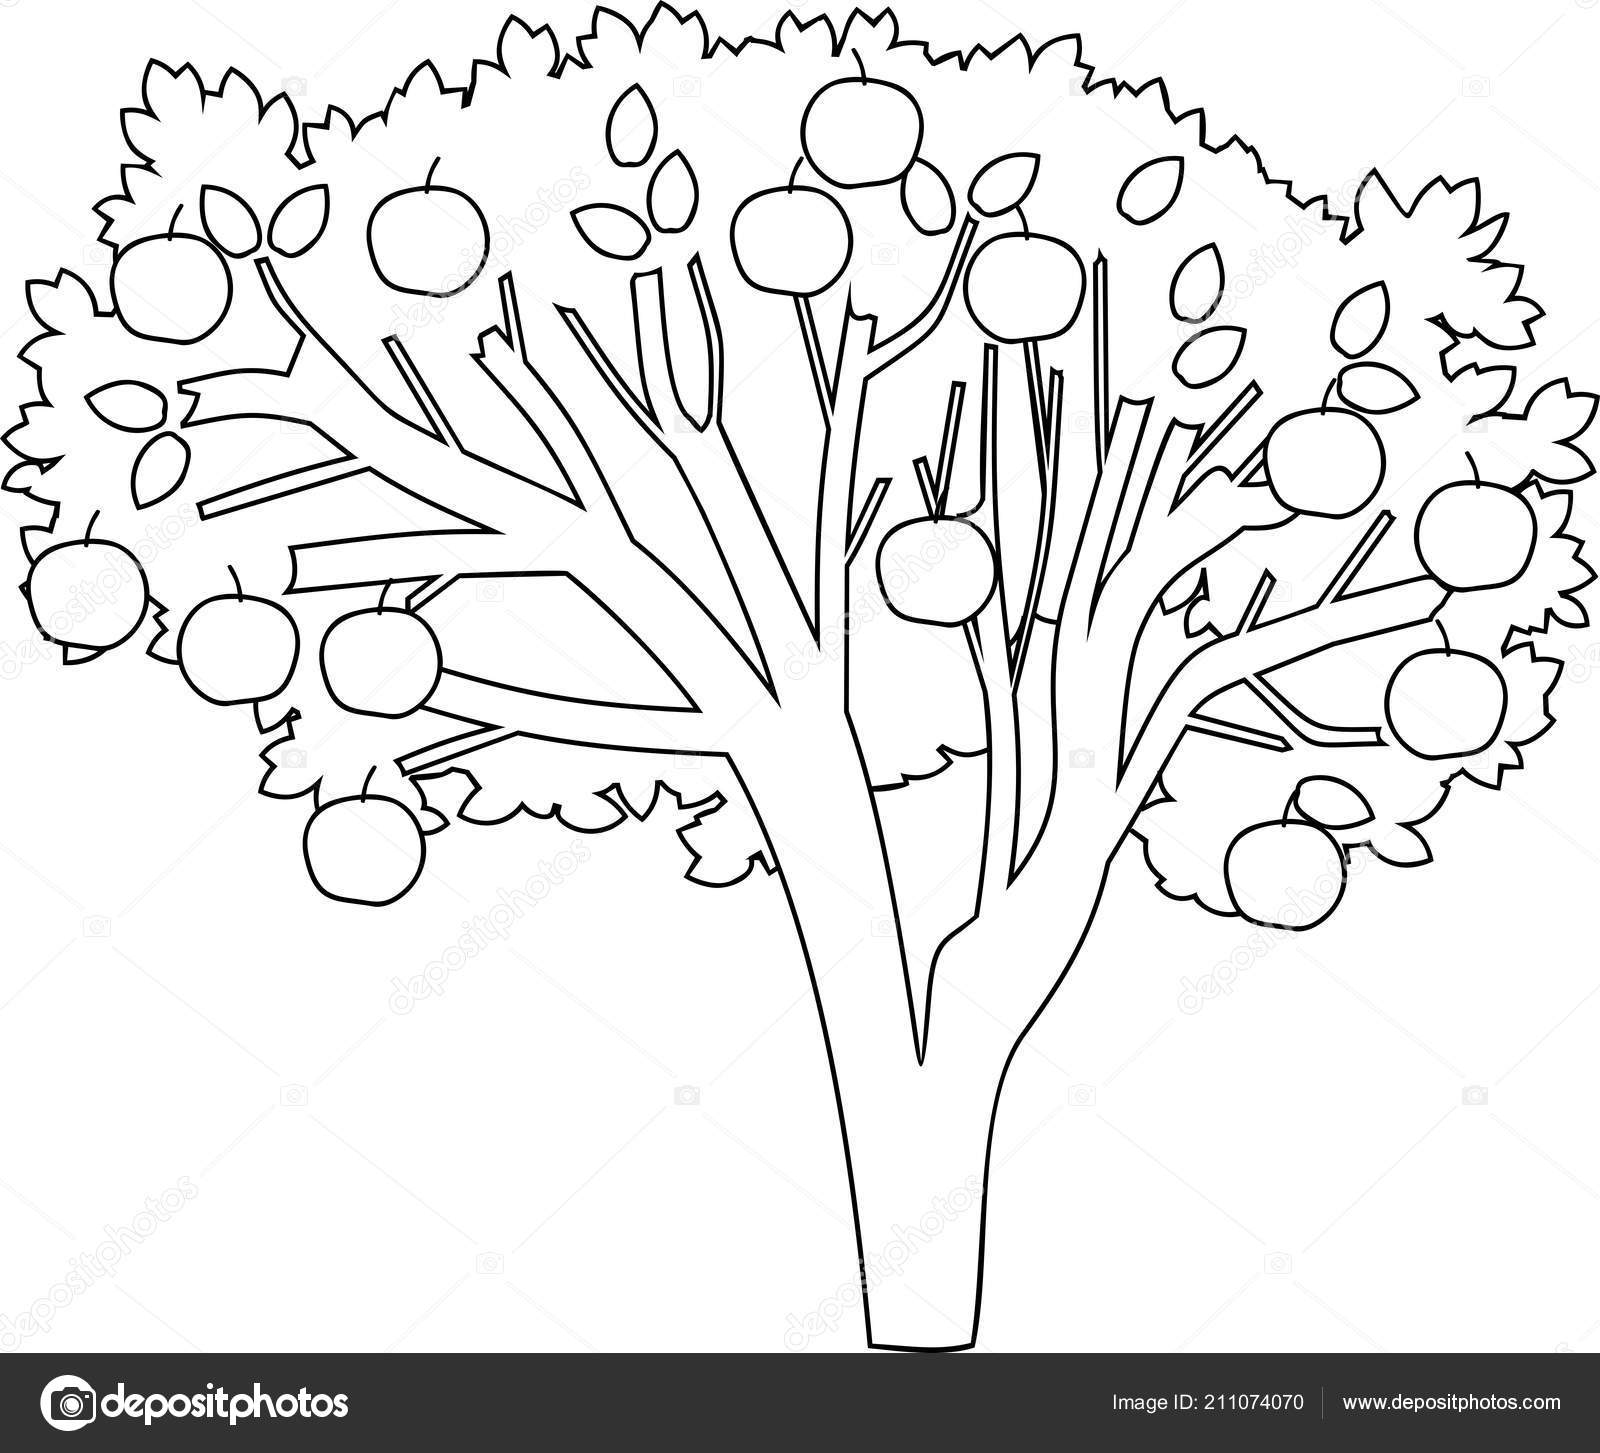 Apple Tree Coloring Page Stock Vector C Mariaflaya 211074070